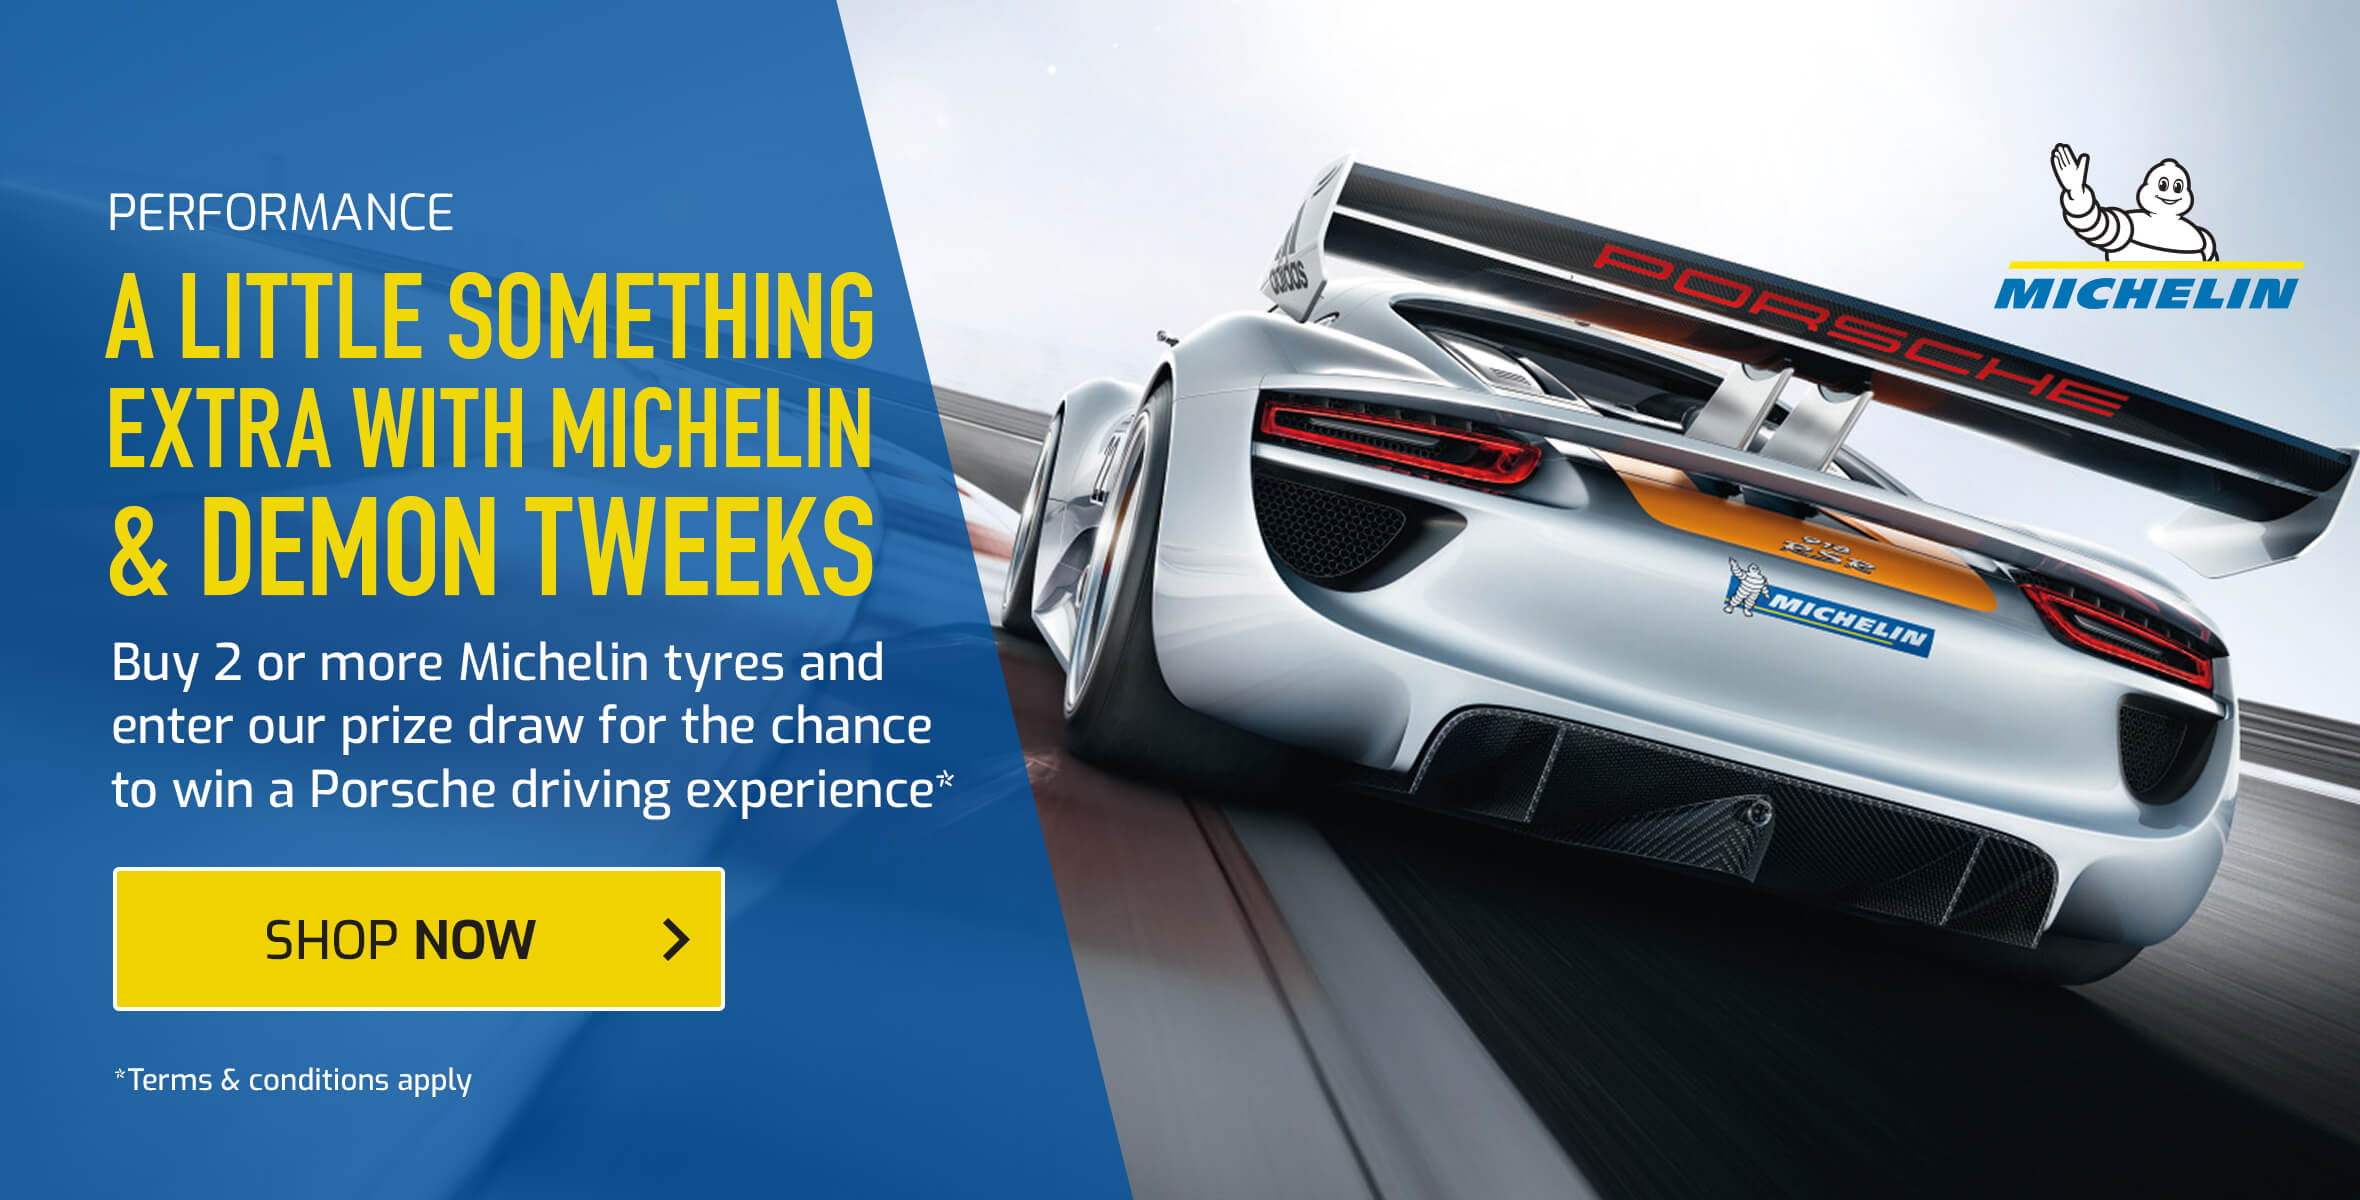 Buy 2 or More Michelin Tyres and Enter A Prize Draw